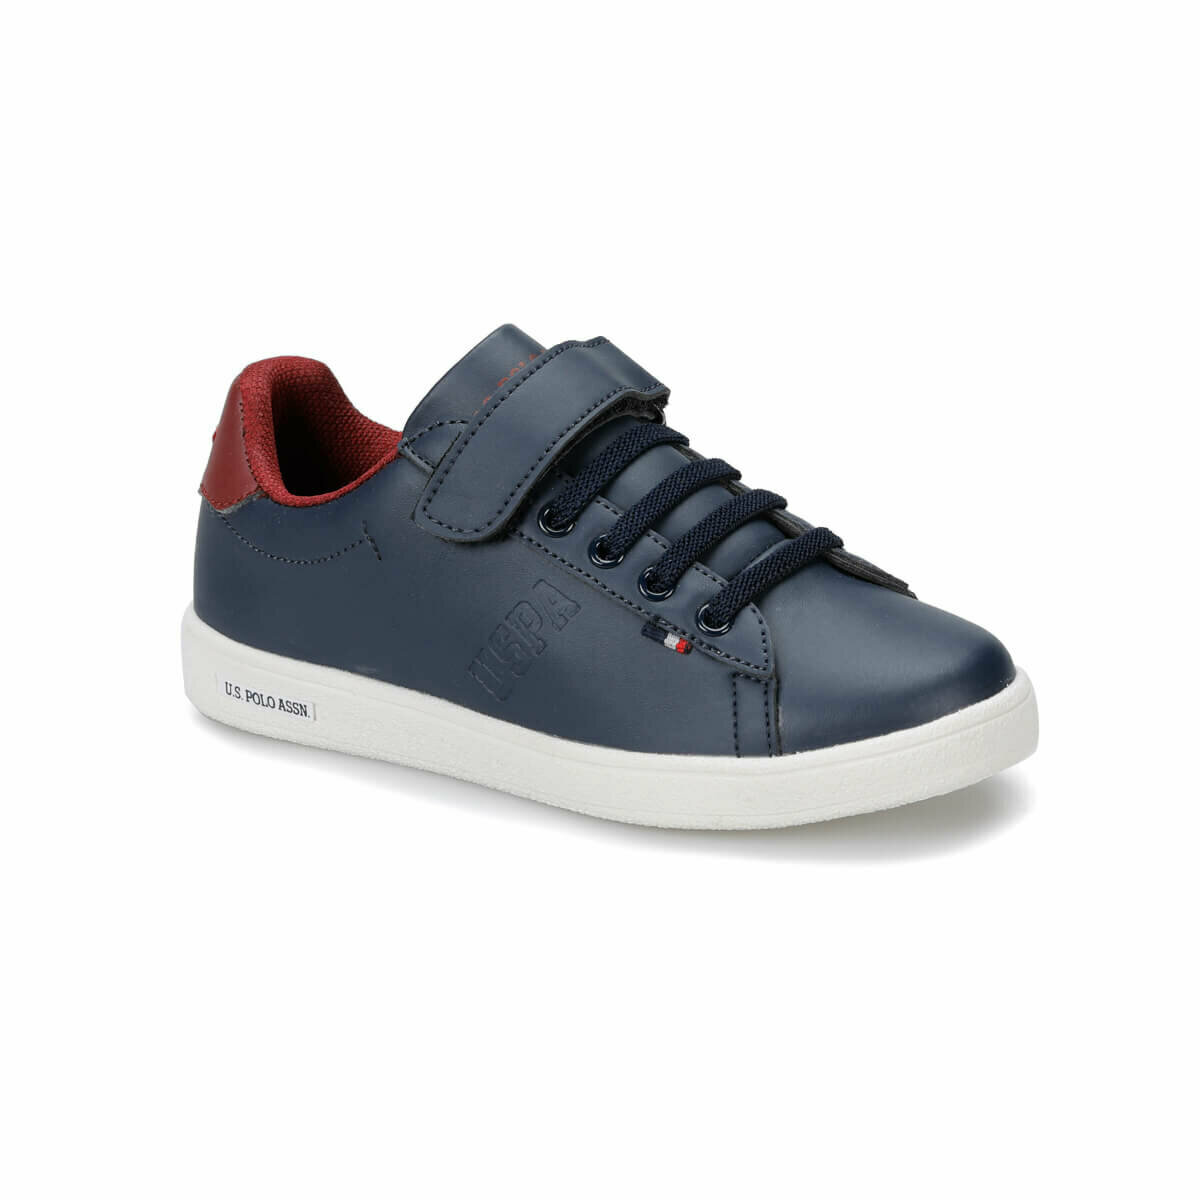 FLO FRANCO Navy Blue Male Child Sneaker Shoes U.S. POLO ASSN.